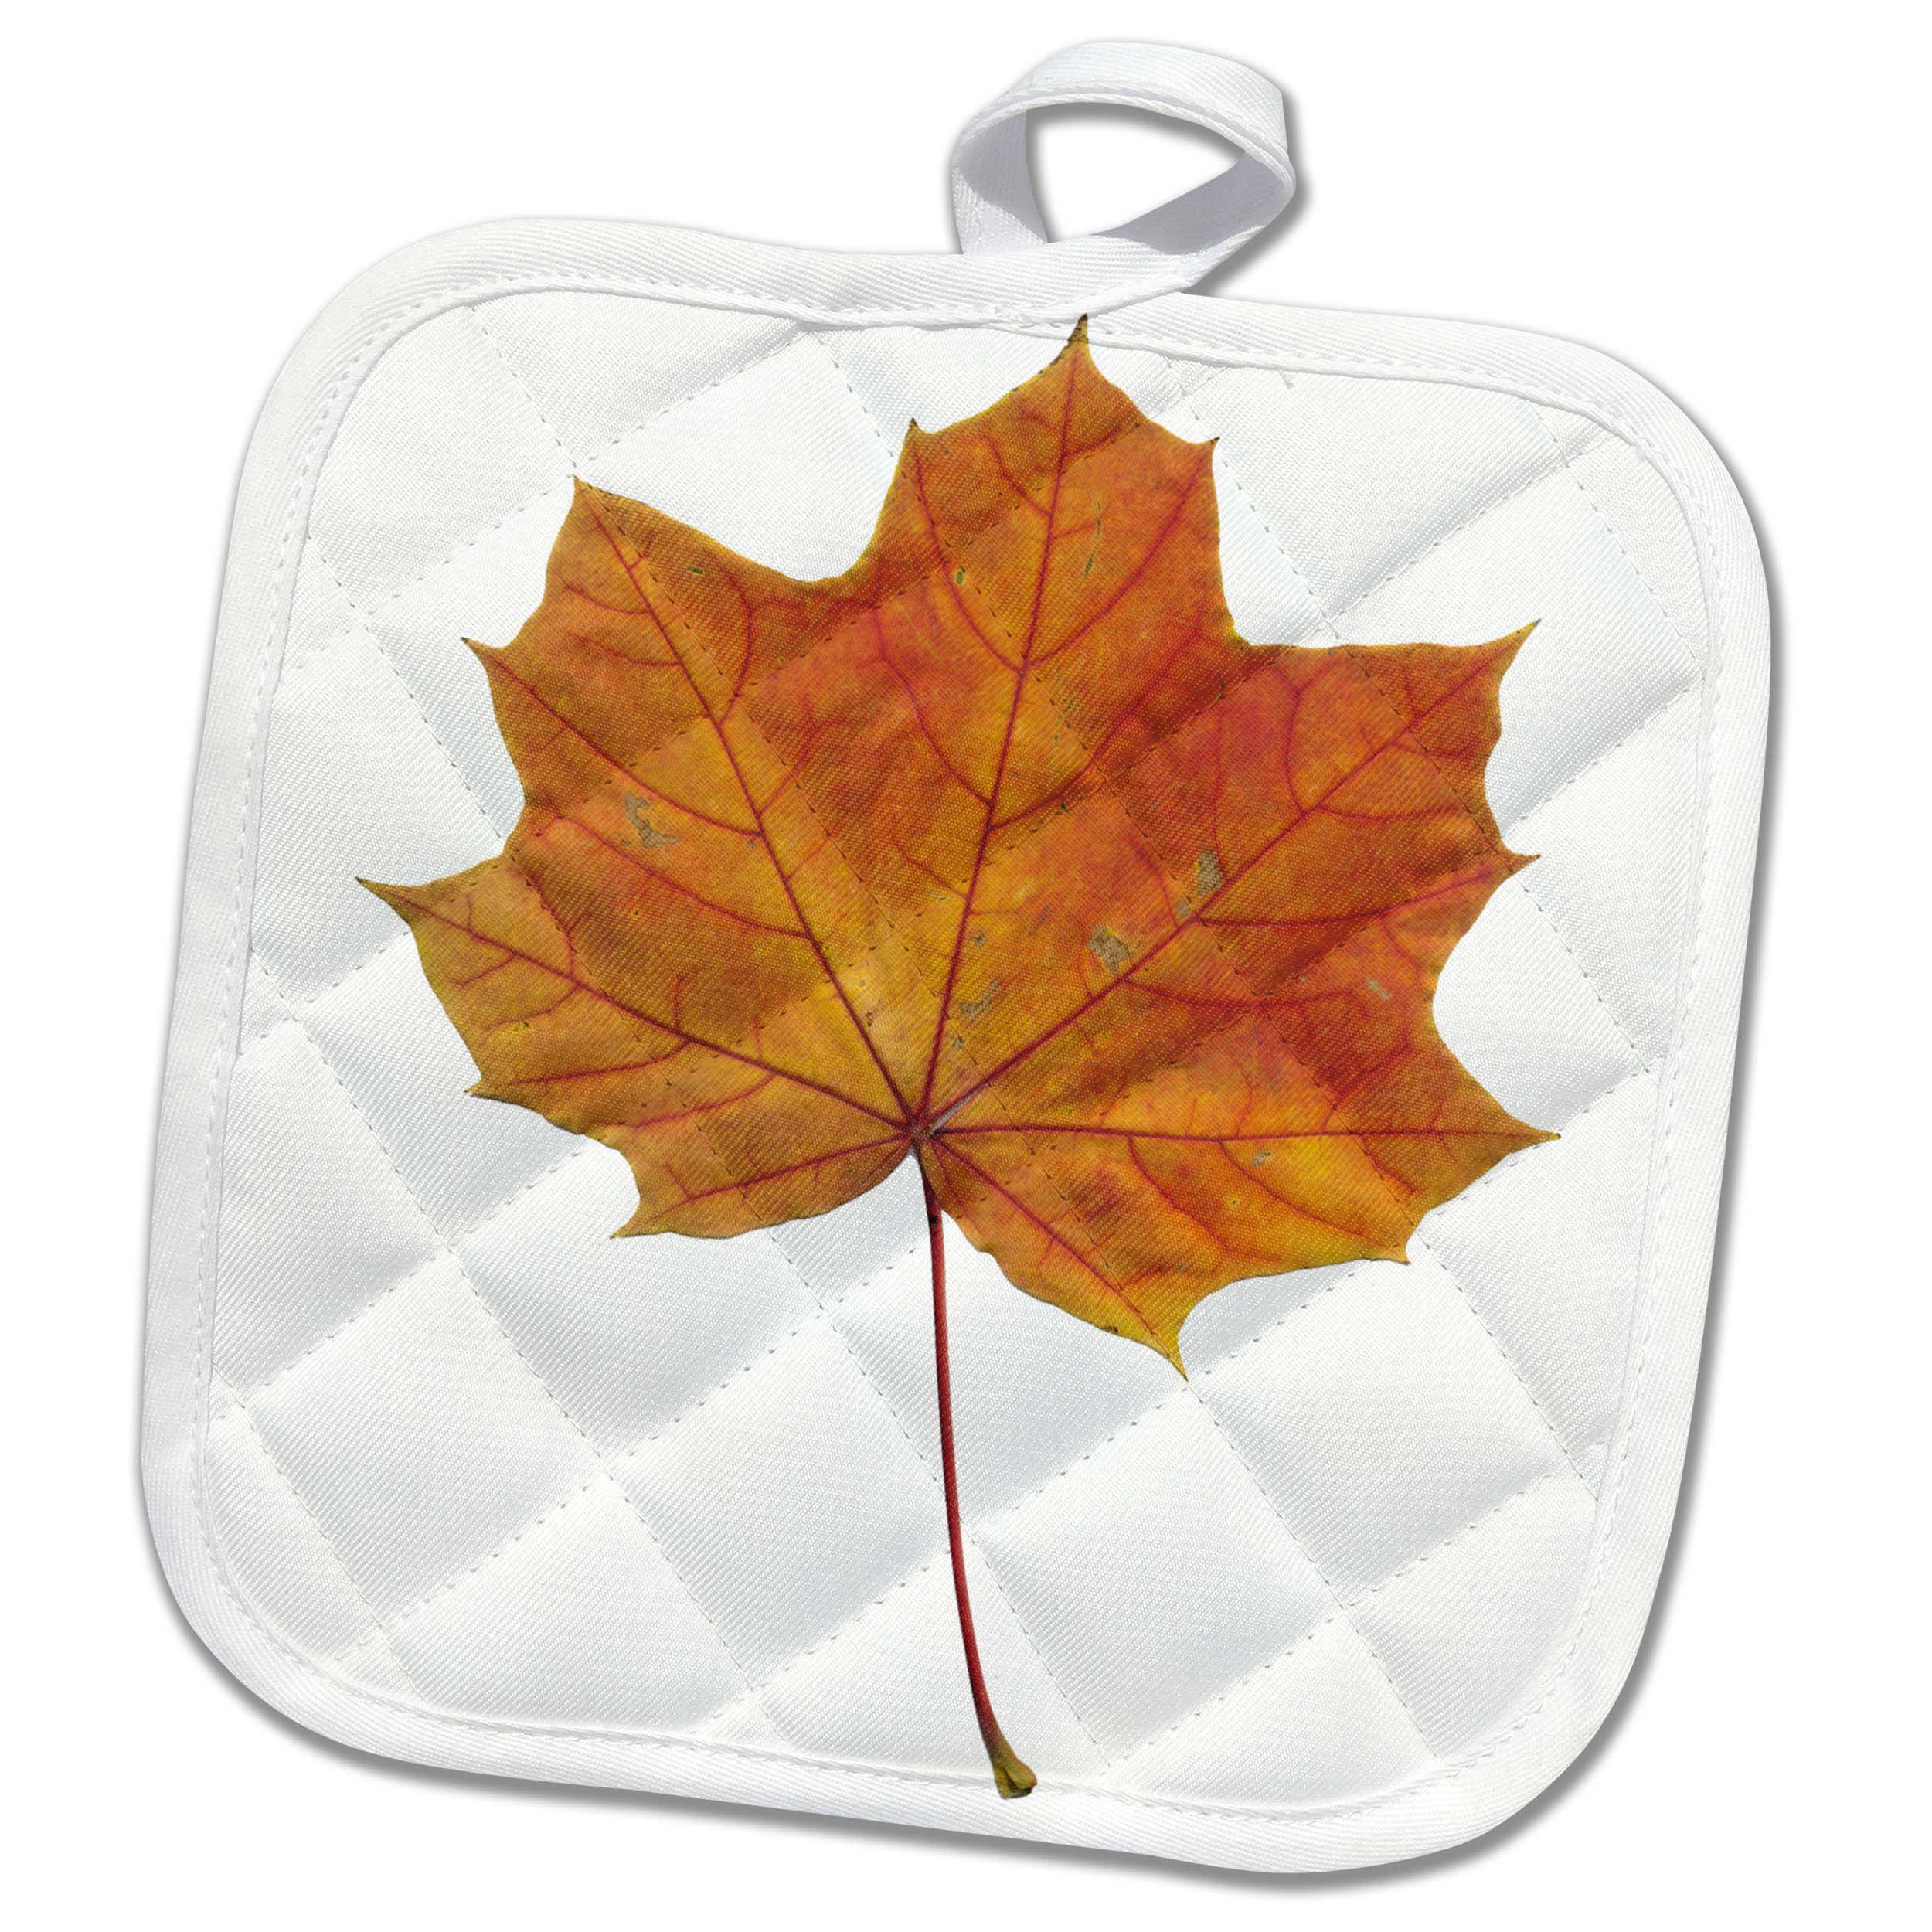 3dRose Alexis Design - Floral - Brown maple leaf, red fibers, transparent background - 8x8 Potholder (phl_264134_1)